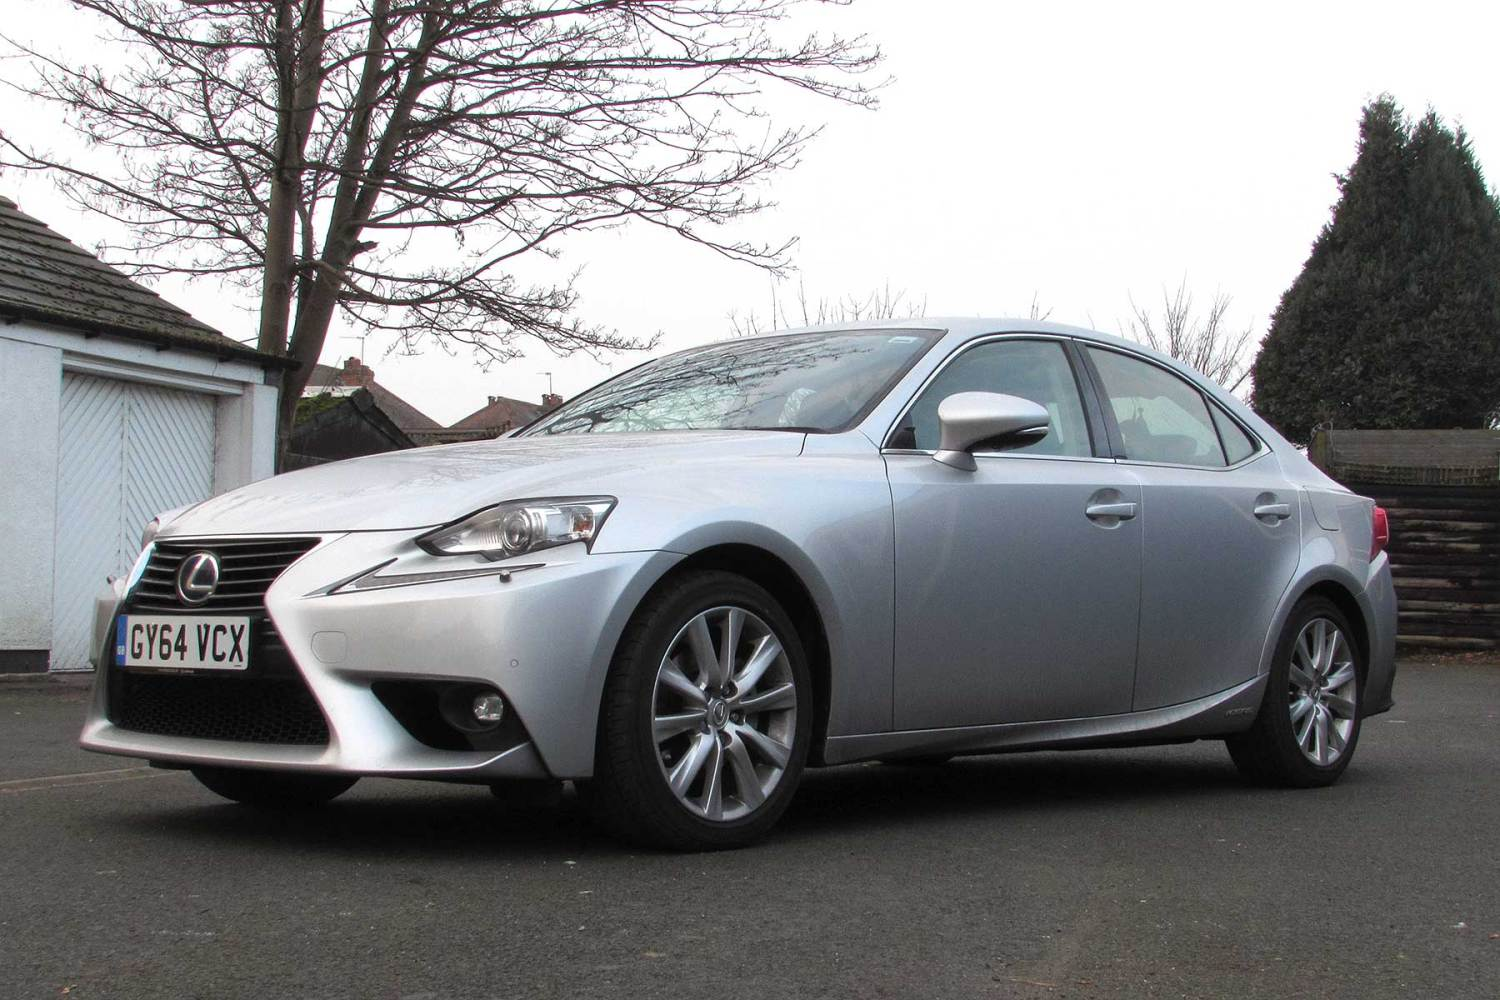 Lexus IS 300h long-term review month 3